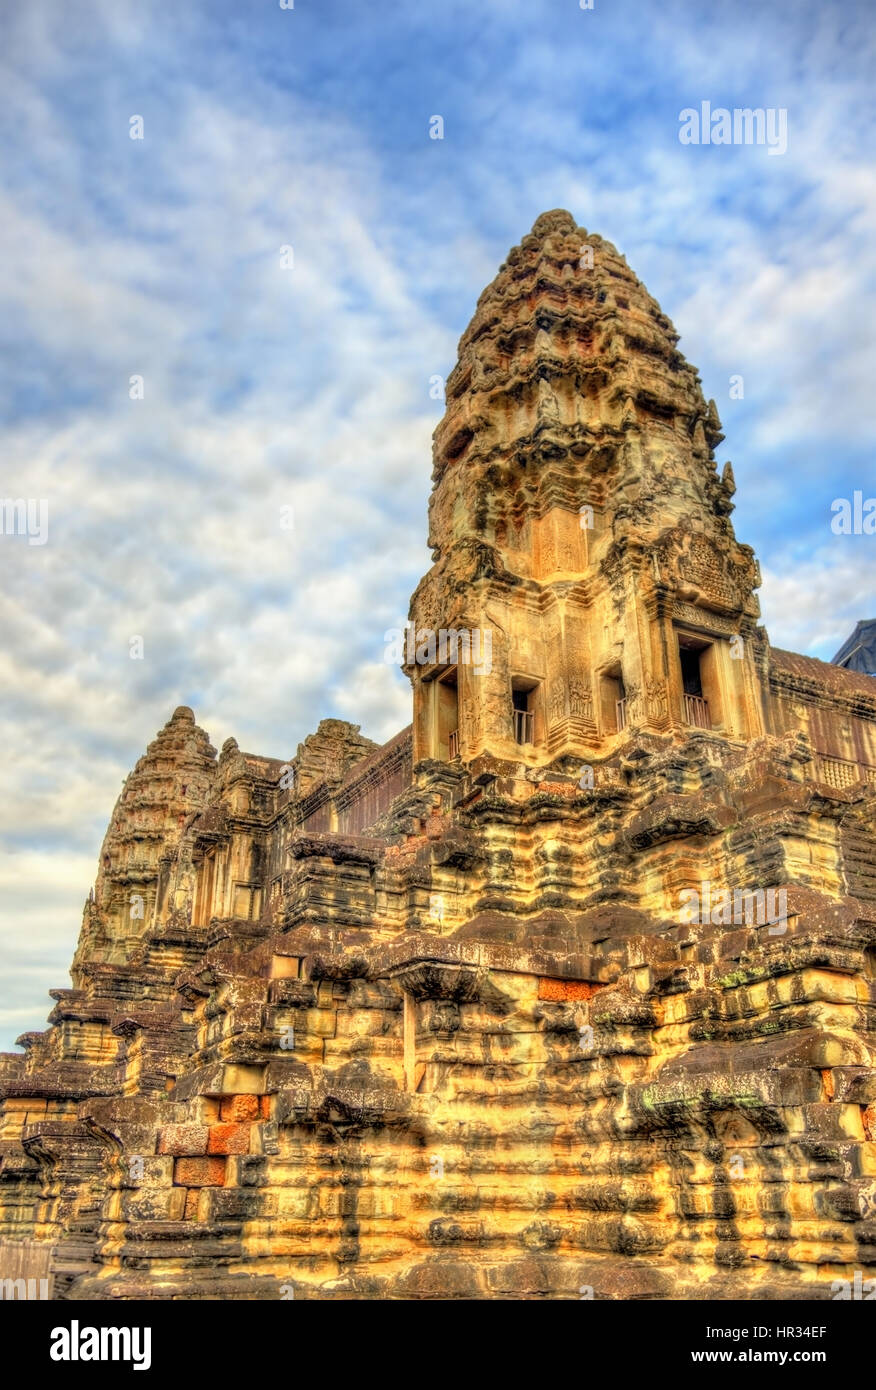 Bakan, the central sanctuary of Angkor Wat - Siem reap, Cambodia - Stock Image